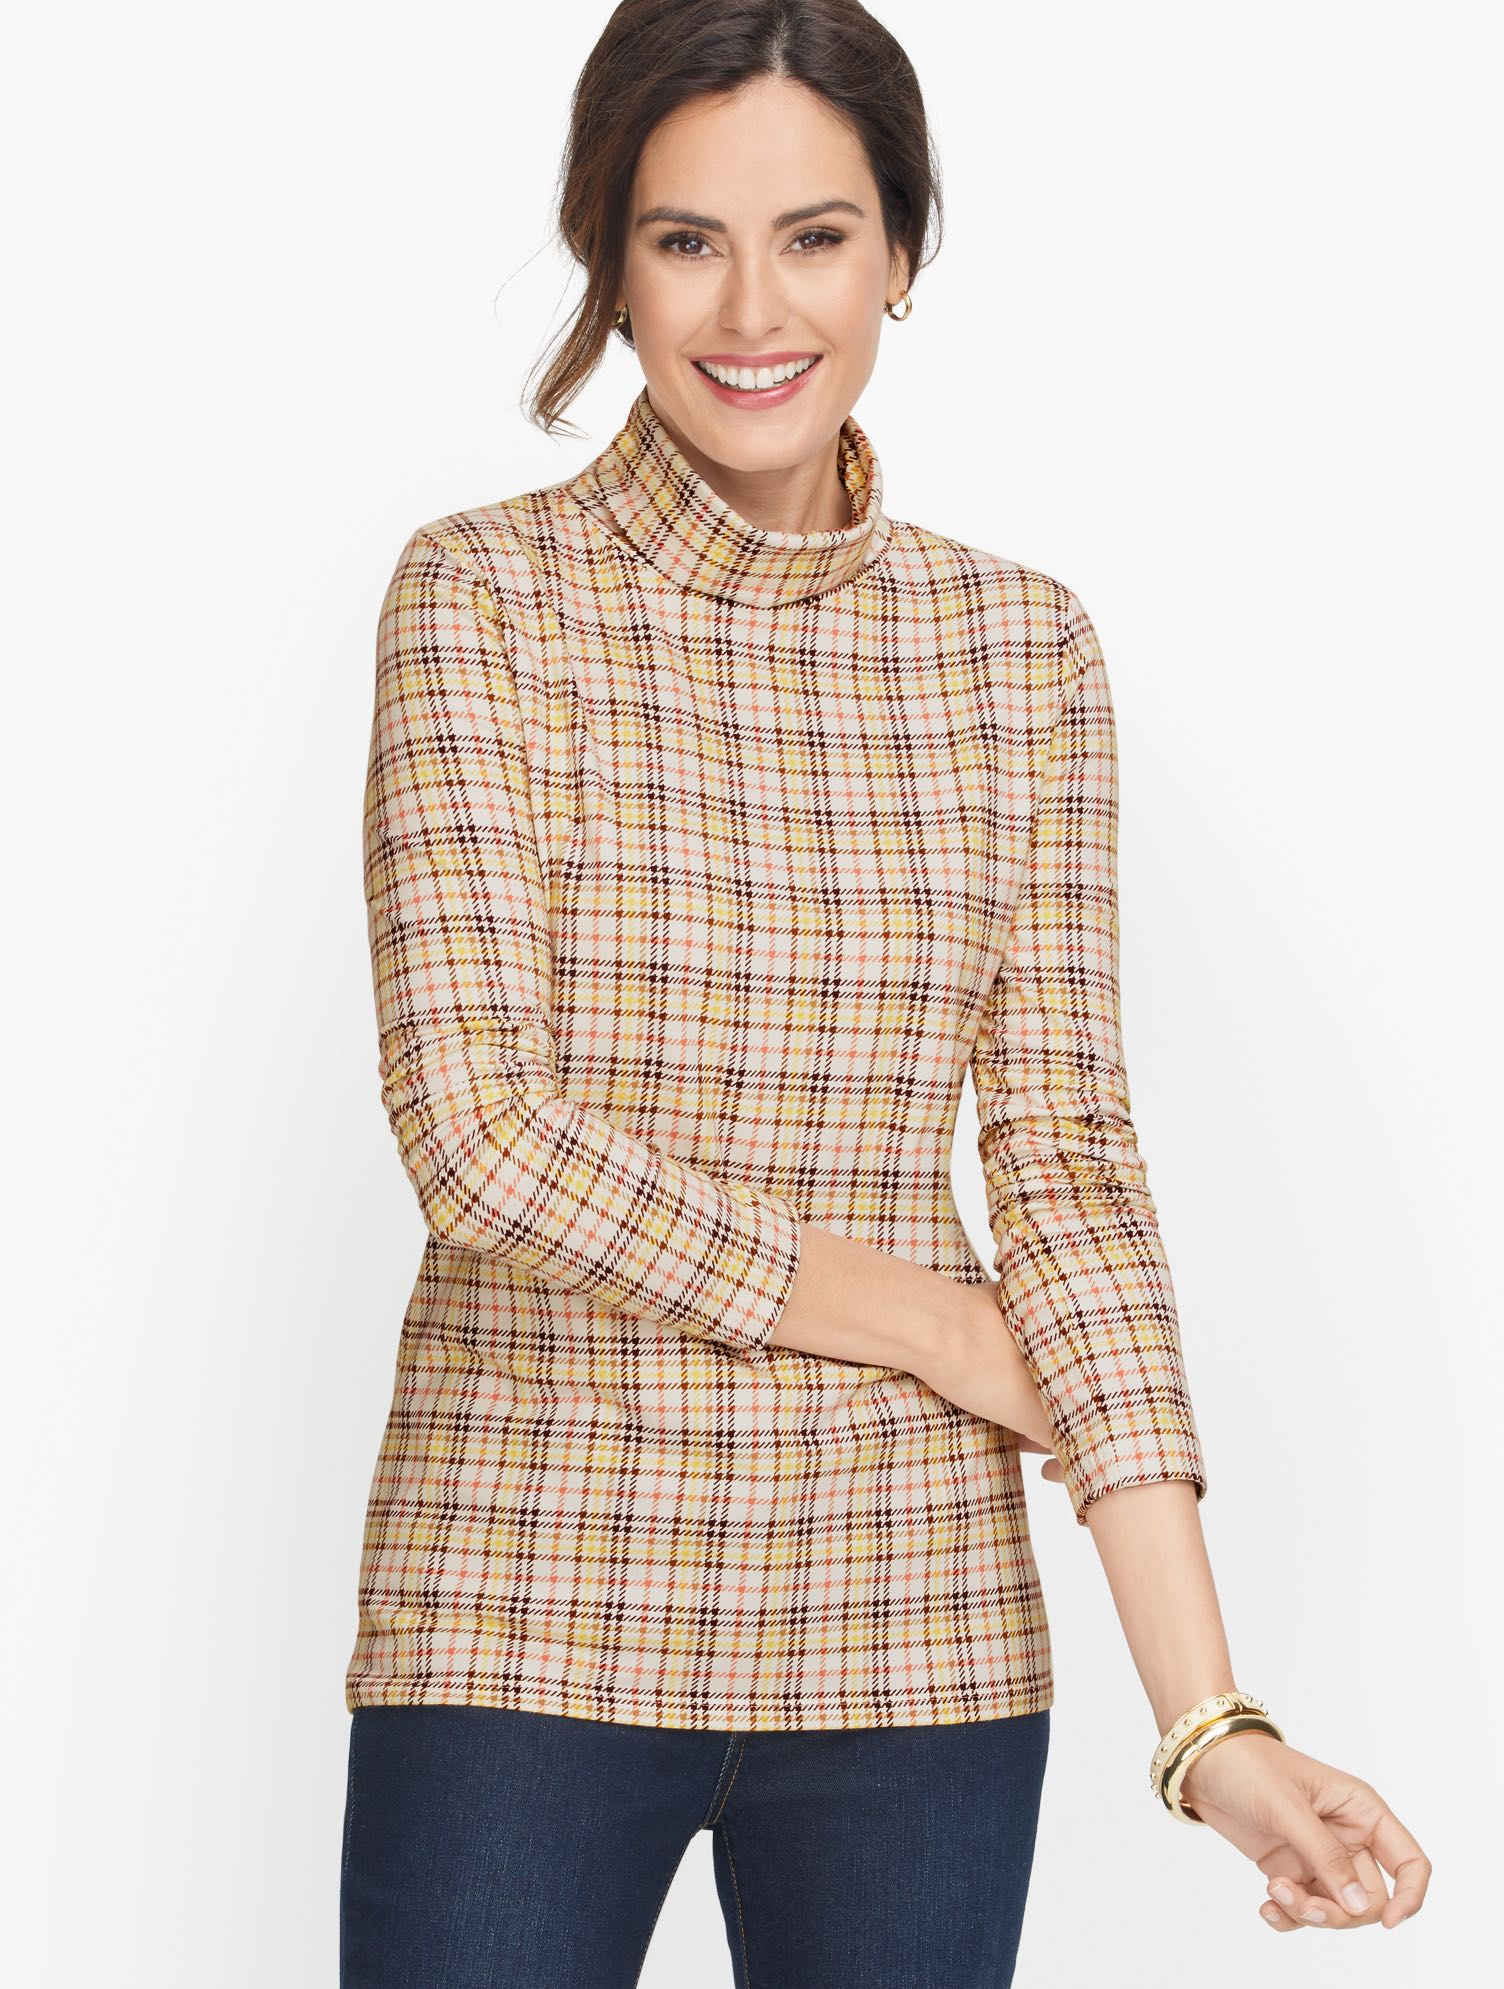 Our coziest turtleneck, in houndstooth print. Crafted from pure cotton with a touch of spandex. Features Neckline: TurtleSleeve length: LongHits: At hipImported Fit: Misses: 25 inches; Petite: 24 inches, Plus: 27 inches, Plus Petite:25.5 inches Material: 95% Cotton, 5% Spandex Care: Machine Wash, Tumble Dry Cotton Turtleneck - Houndstooth - Ivory - 3X Talbots